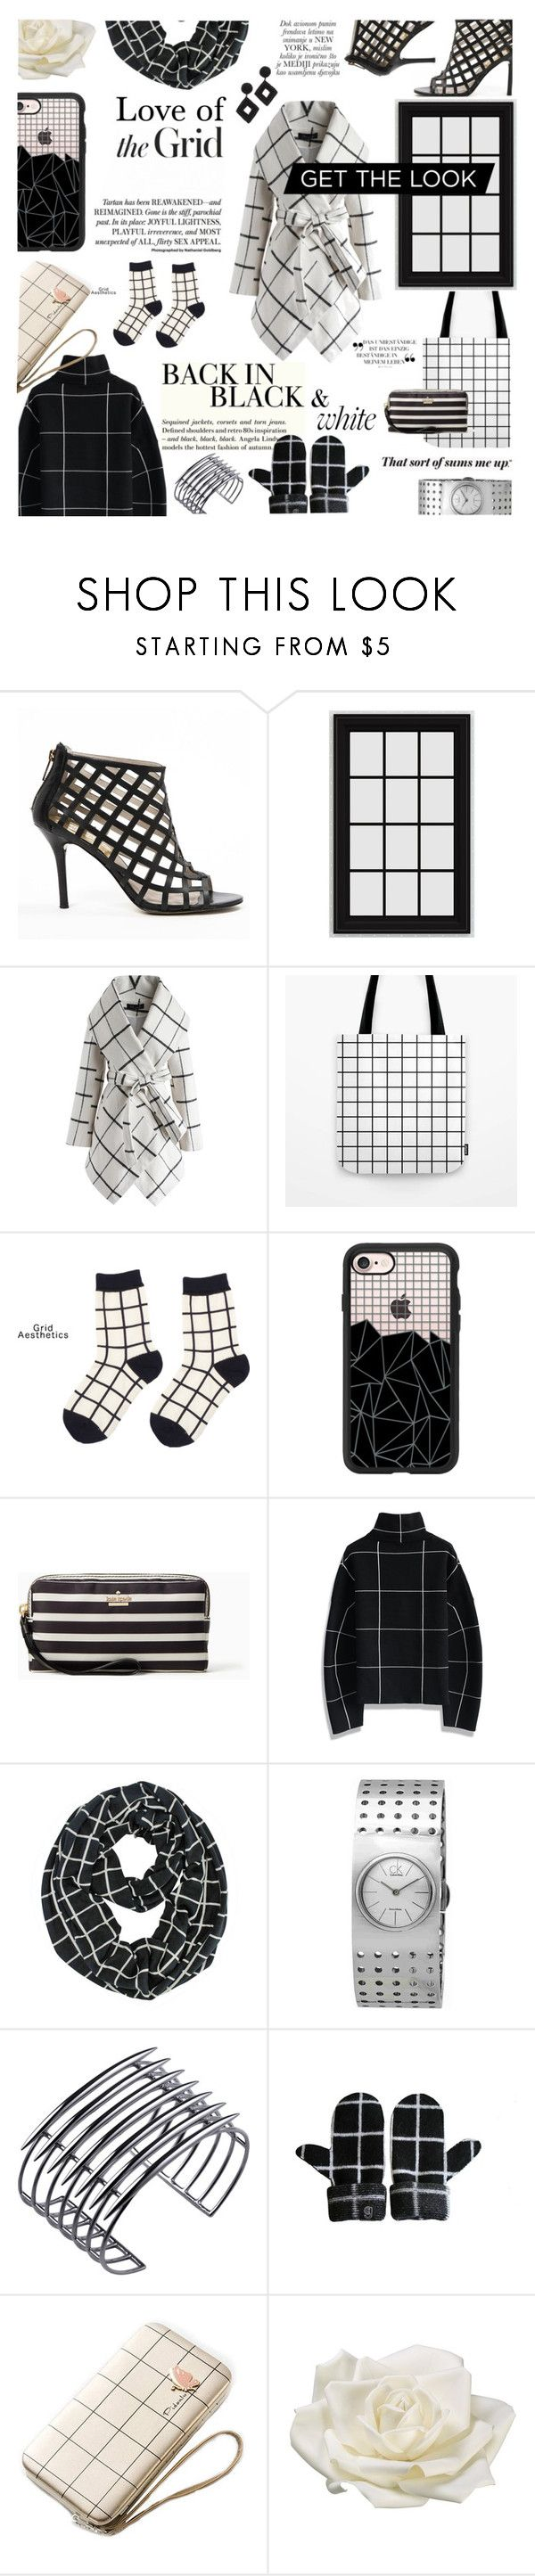 """black&white"" by ezgi-g ❤ liked on Polyvore featuring MICHAEL Michael Kors, Chicwish, Casetify, Calvin Klein, H&M, Shaun Leane, Giannina Capitani, Allstate Floral, Kenneth Jay Lane and blackandwhite"